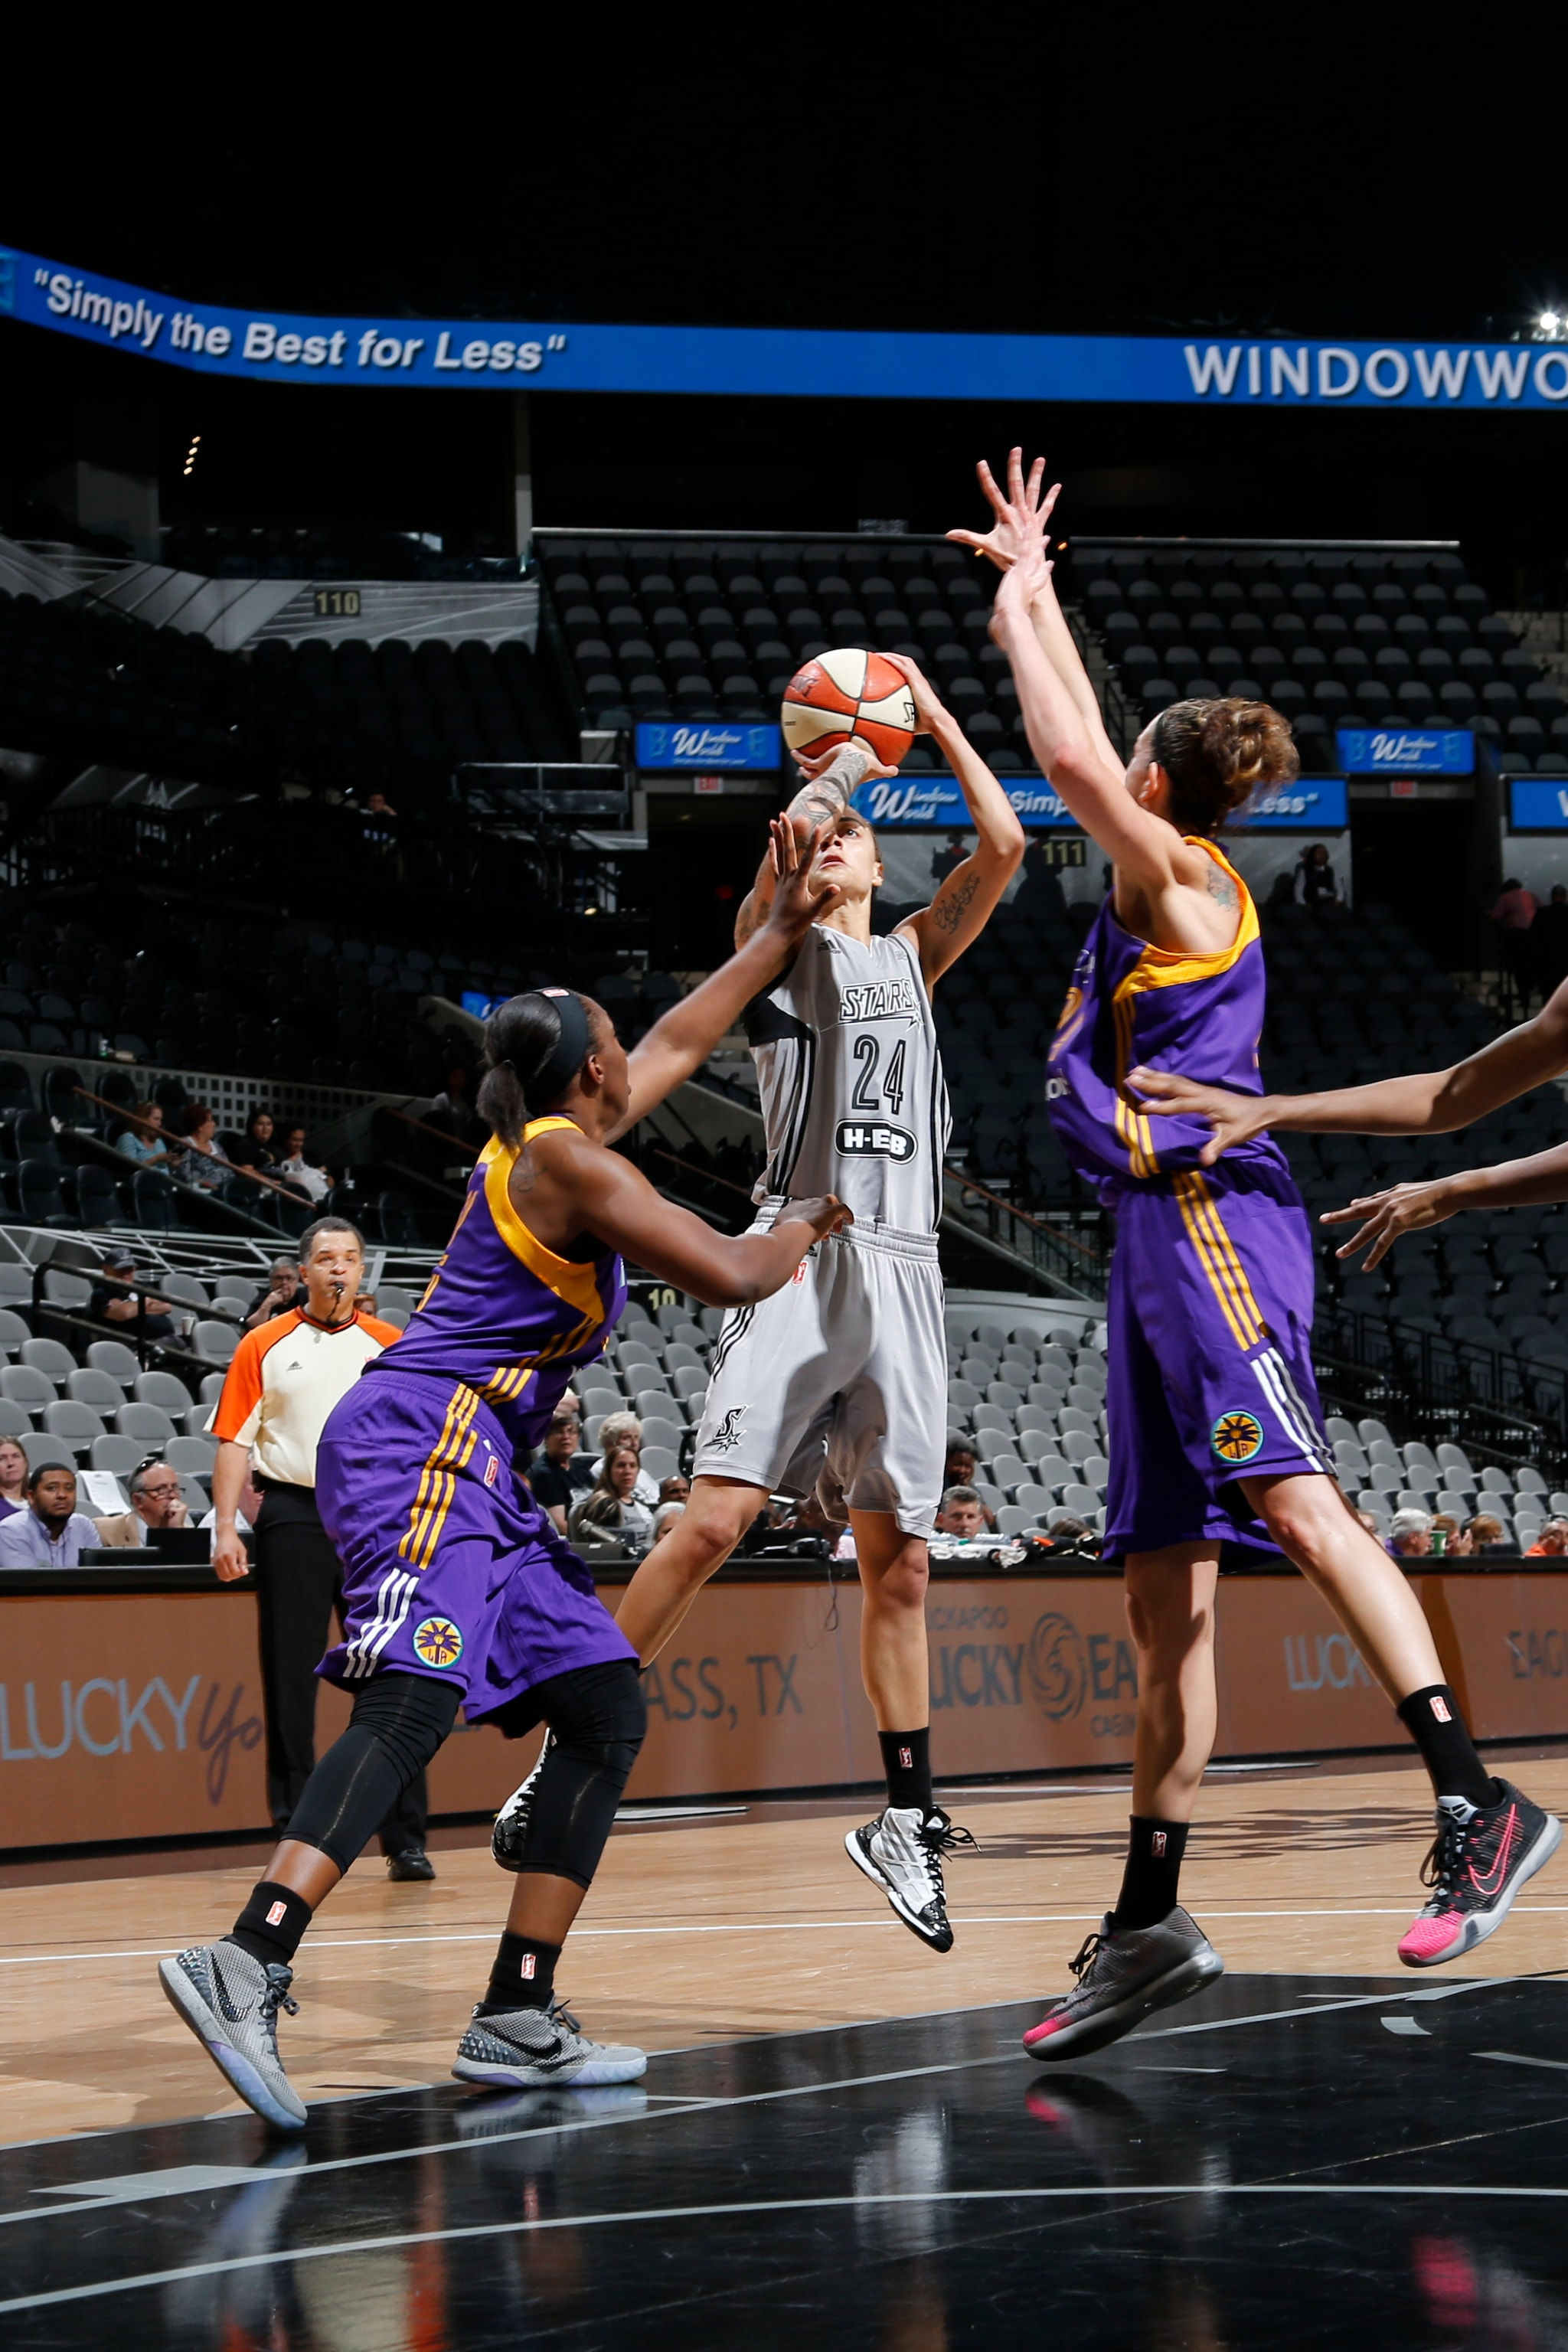 SAN ANTONIO, TX - MAY 9: Jazmon Gwathmey #24 of the San Antonio Stars shoots the ball against the Los Angeles Sparks on May 9, 2016 at the AT&T Center in San Antonio, Texas. NOTE TO USER: User expressly acknowledges and agrees that, by downloading and or using this photograph, user is consenting to the terms and conditions of the Getty Images License Agreement. Mandatory Copyright Notice: Copyright 2016 NBAE (Photos by Chris Covatta/NBAE via Getty Images)